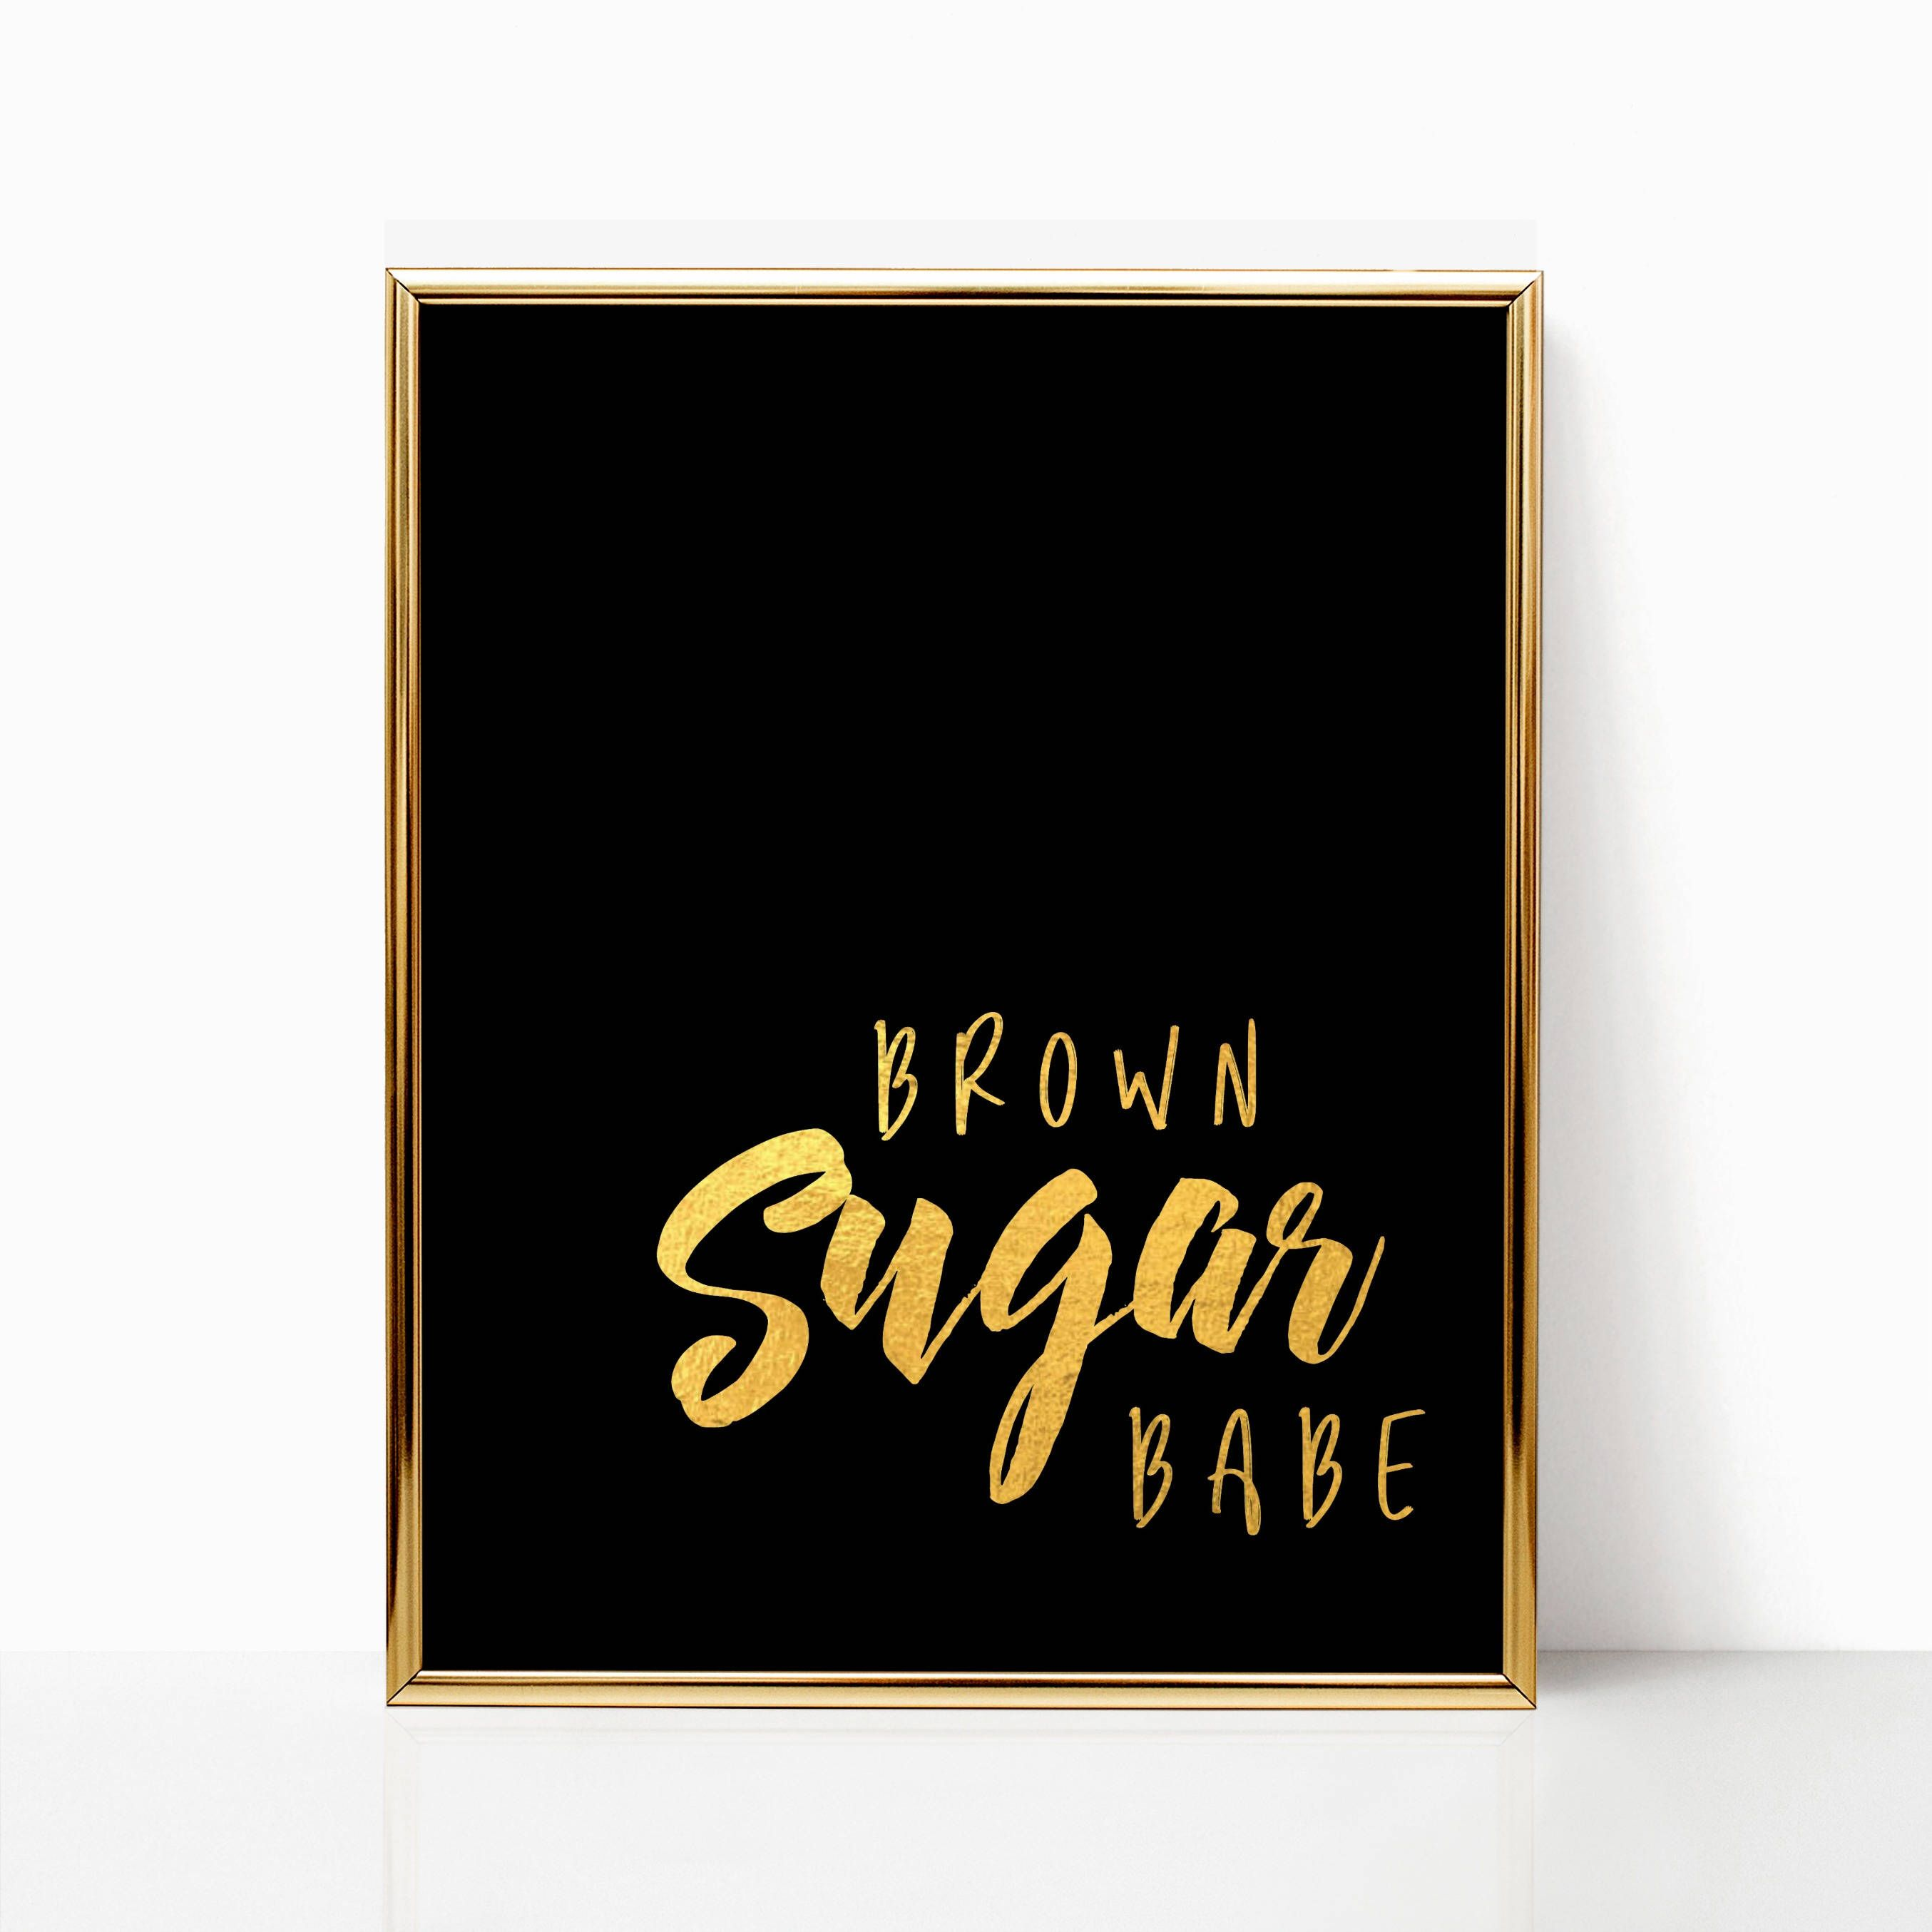 Wall Art Black Girl Magic Melanin Unicorn Queen Gift For Her Home Decor Black Gold Gift For Women Download Print Brown Sugar Babe Black Girl Quotes Black Is Beautiful Quotes Black